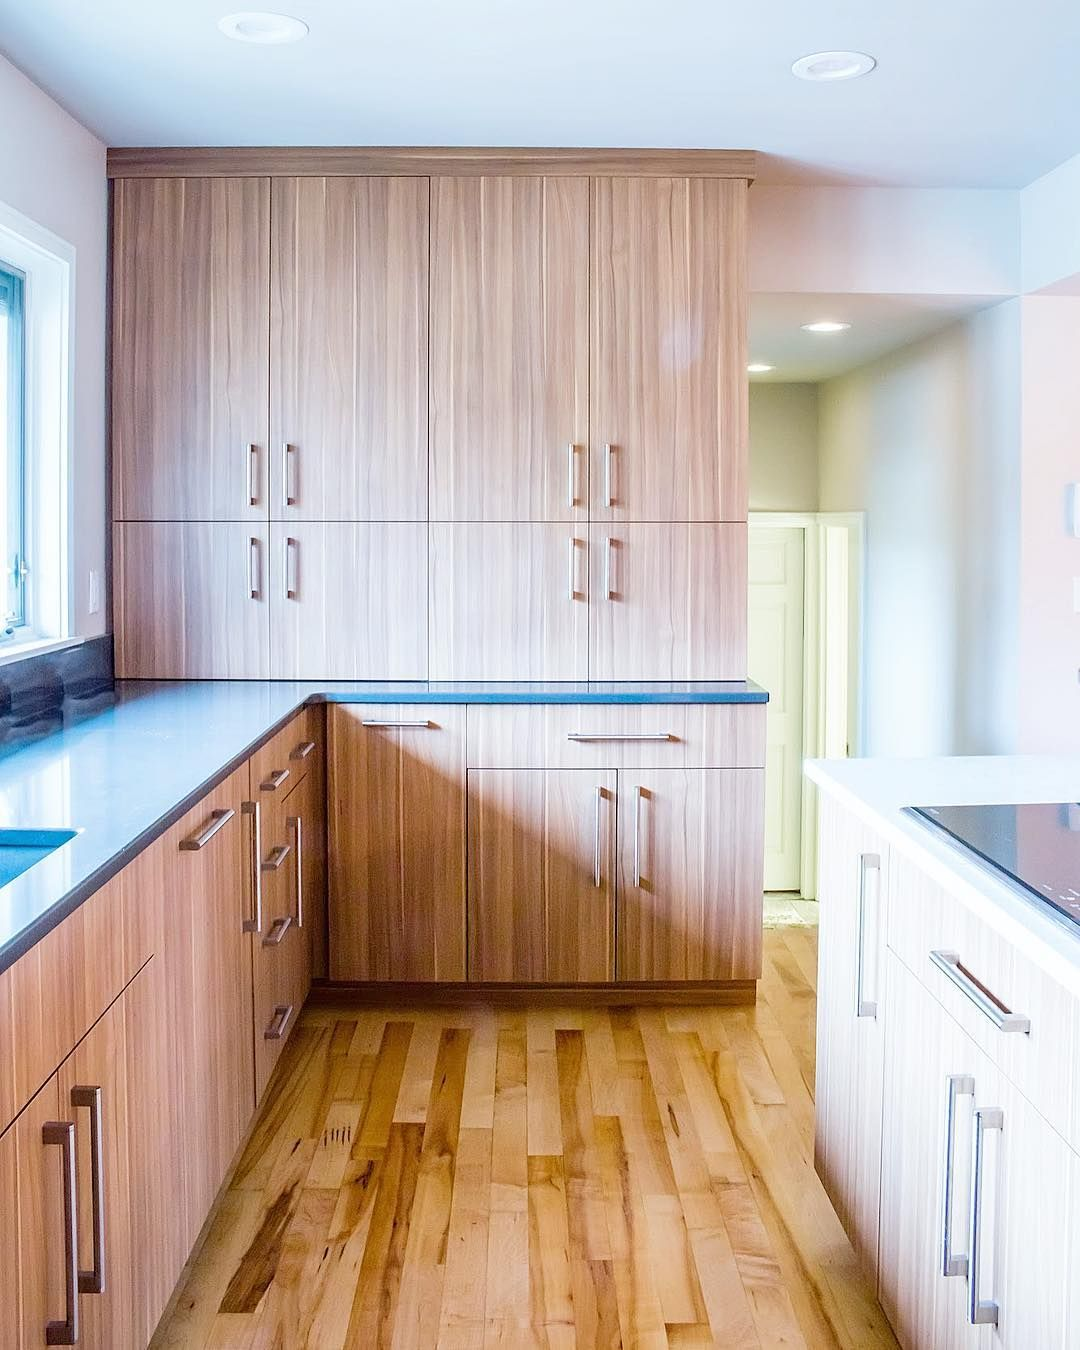 We Used Two Different Cabinets In This Kitchen Arizona Cypress And Walnut For A Contemporary Feel Th In 2020 Blue Painted Cabinets Staining Cabinets Kitchen Projects